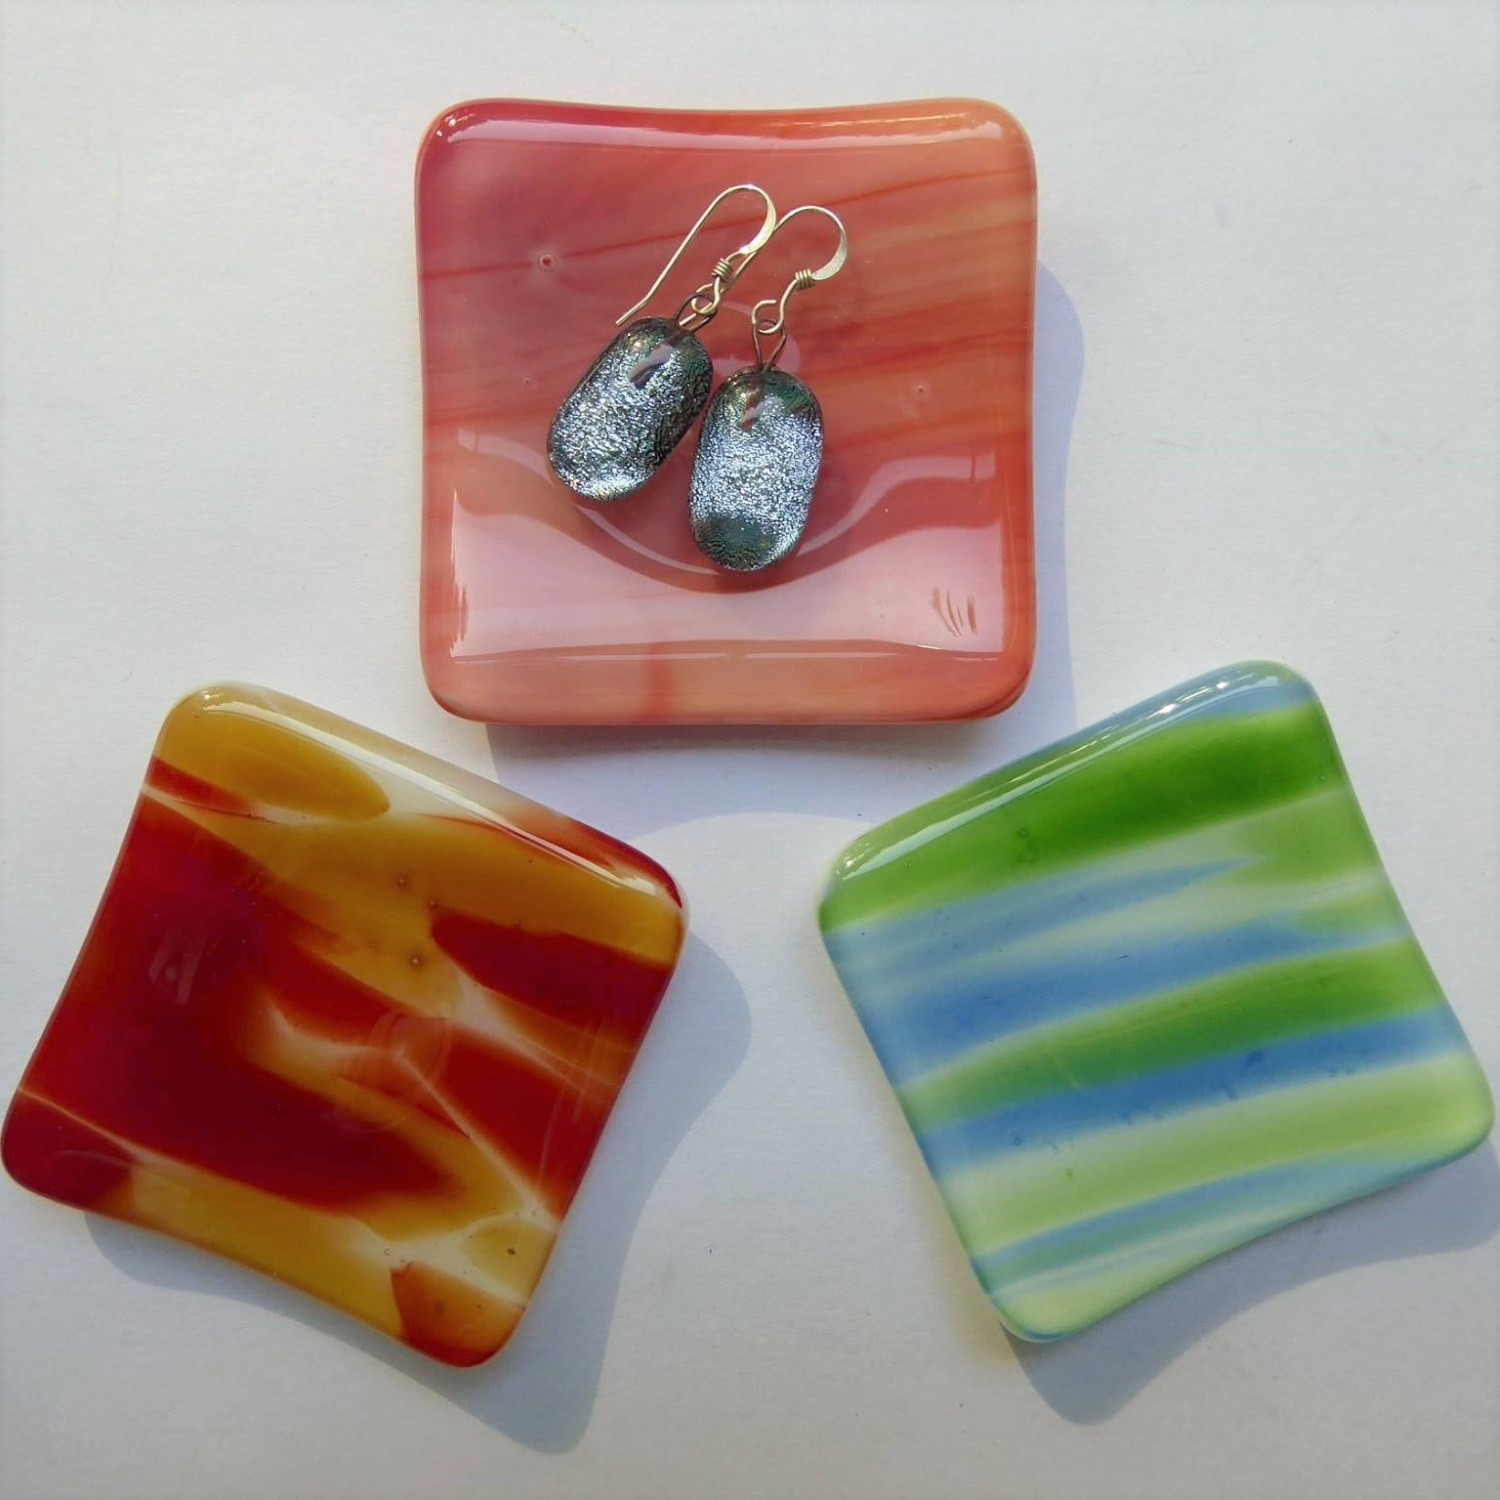 Small coloured dishes